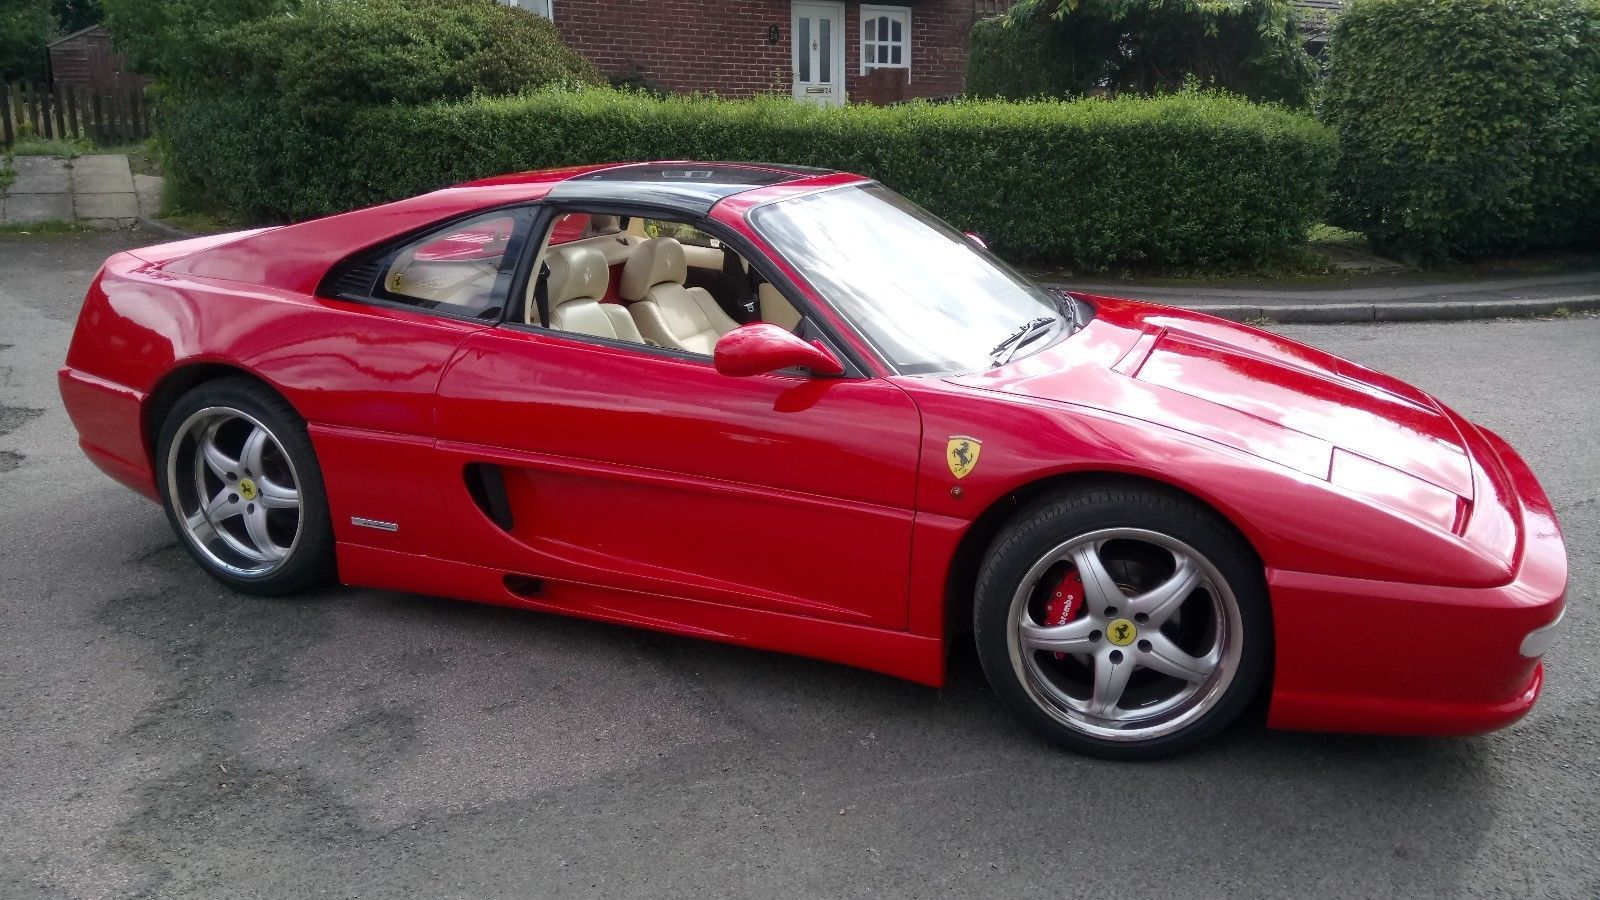 Looking For A Ferrari F355gts Replica Toyota Mr2 Turbo Rev2 Built By Bad Design Not A Kit This One Is On Ebay Voitures Et Motos Voiture Motos